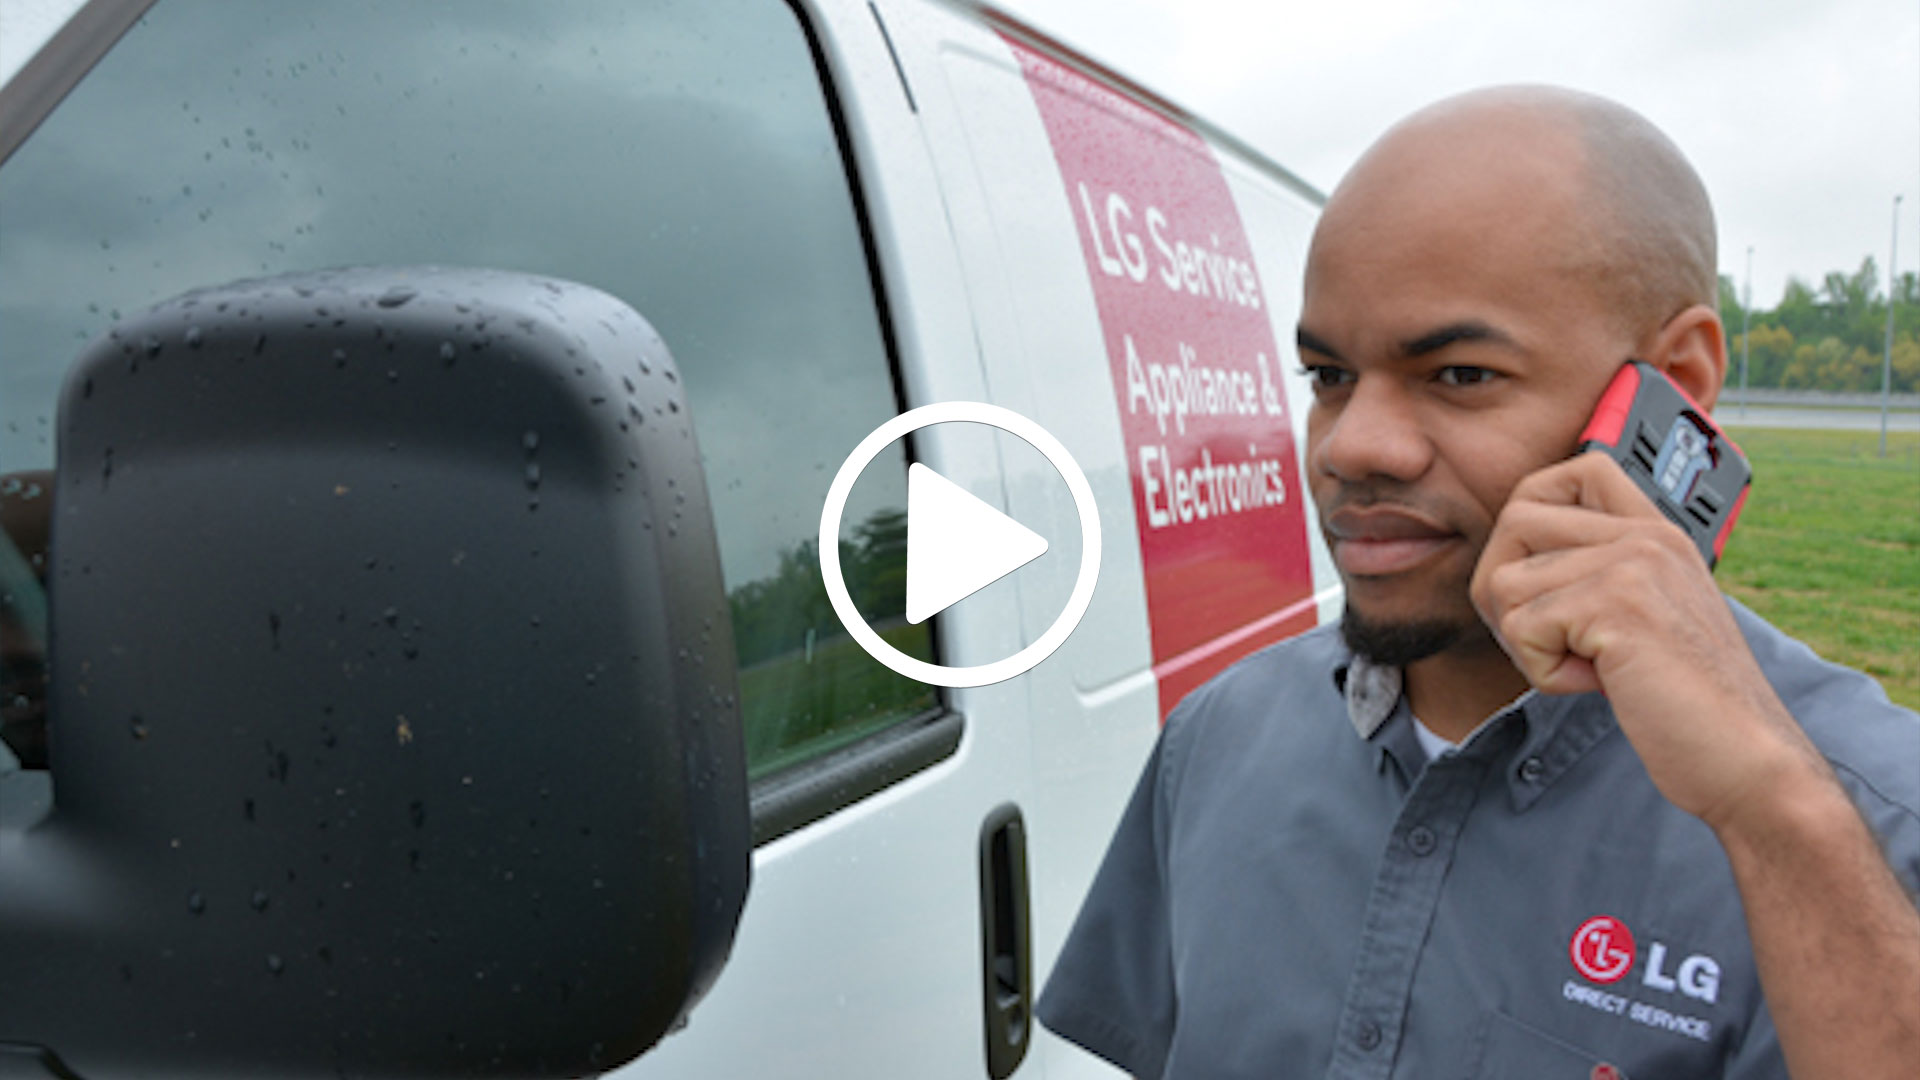 Watch our careers video for available job opening Field Service Technician in Madison, WI